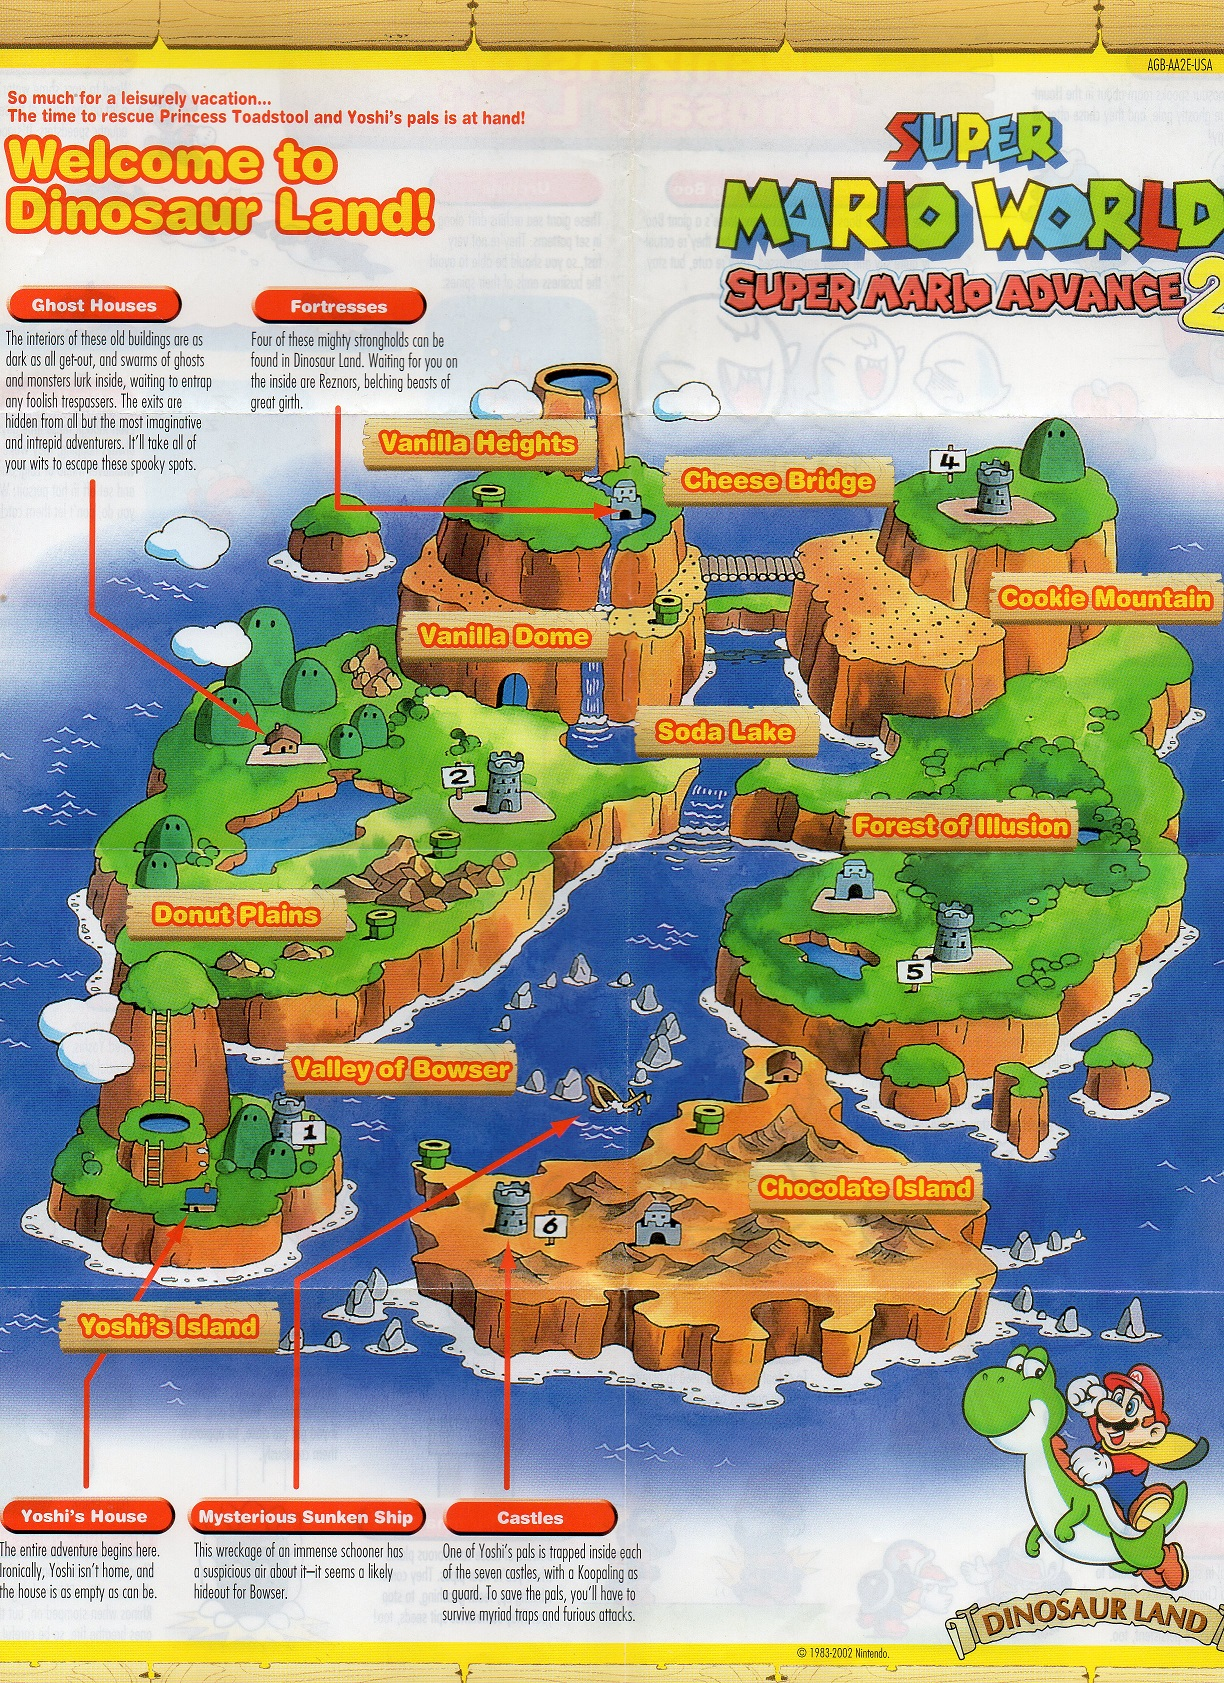 Super Mario World Dinosaur Land map scan GBA